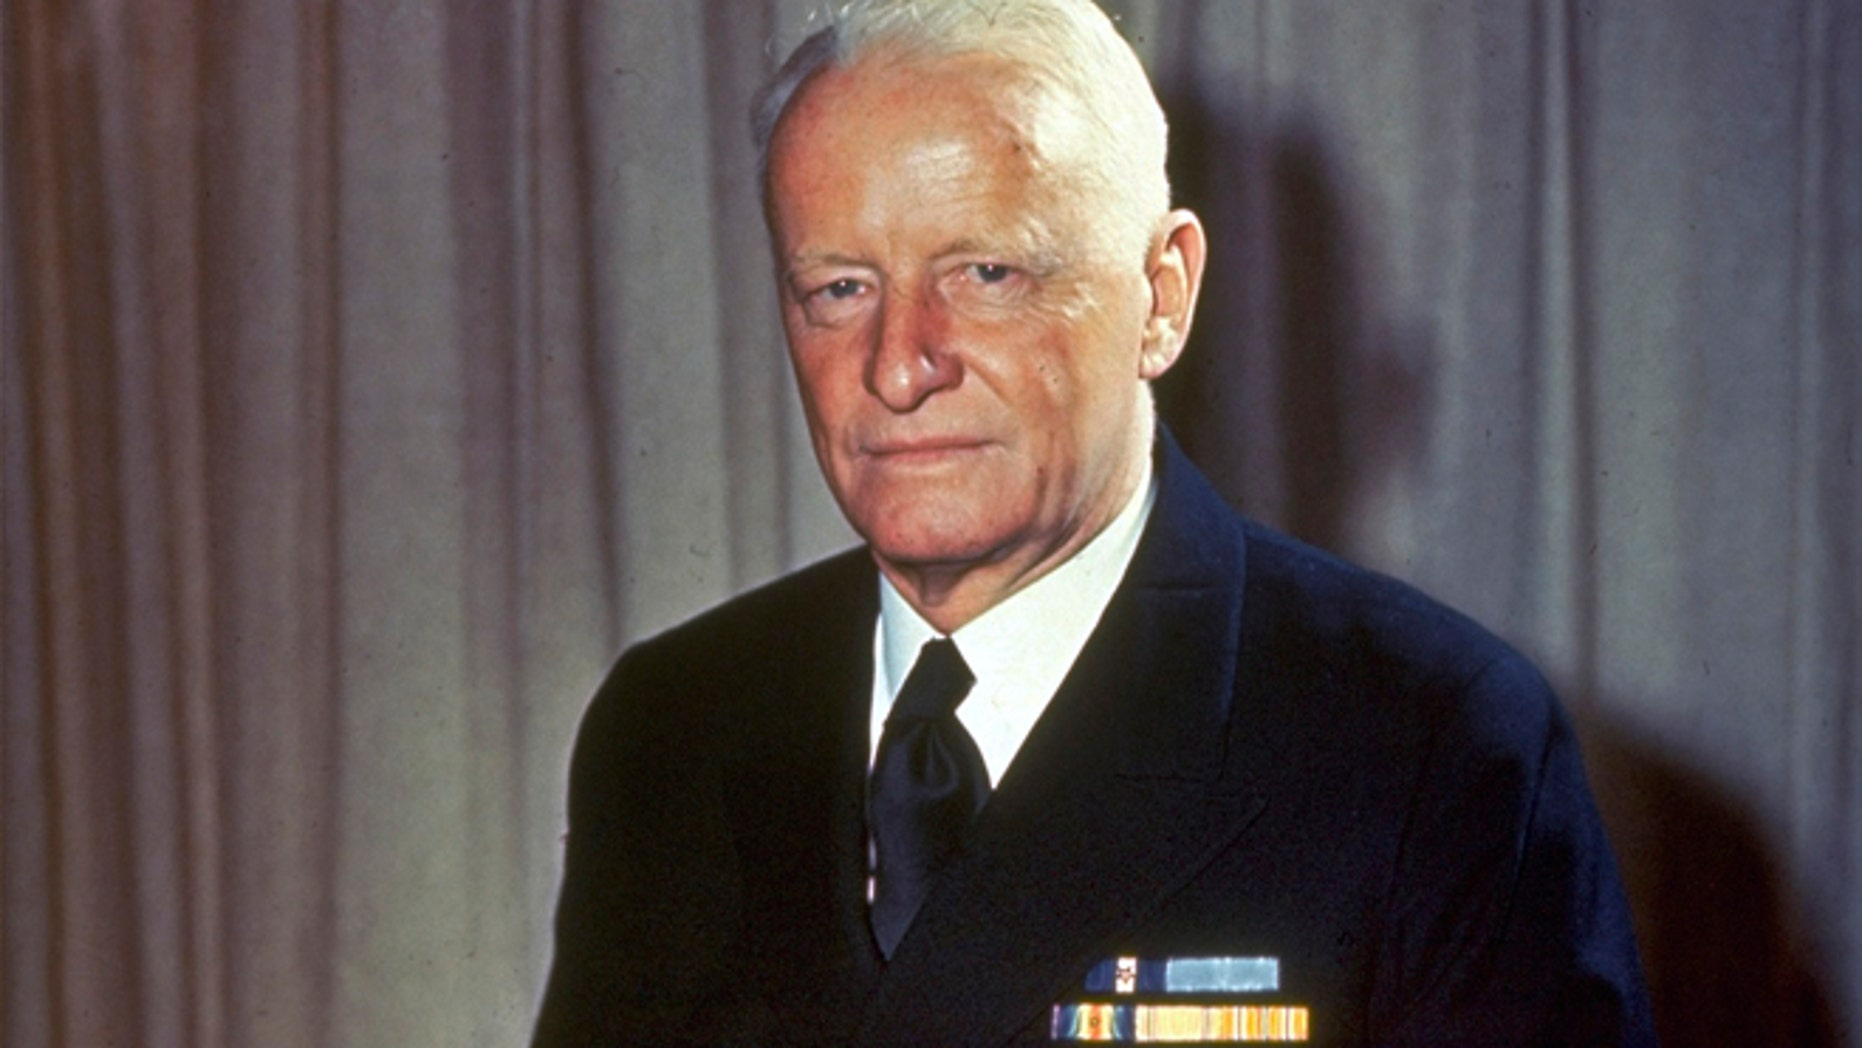 This undated file photo shows Adm. Chester W. Nimitz, commander of U.S. Naval forces in the Pacific during World War II, sitting on a desk in an unknown location.